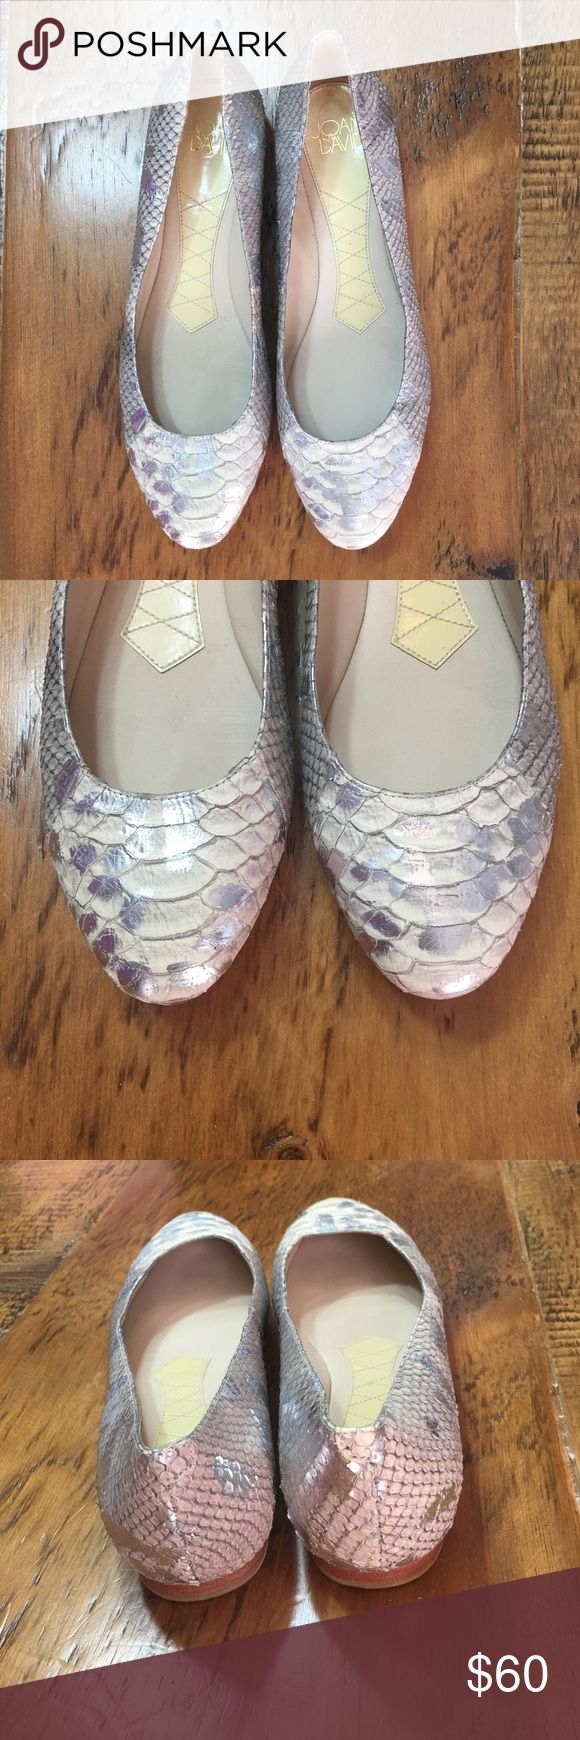 Joan David Faux Snake Skin Flat NEVER WORN! Joan David faux snake skin flat. Leather upper and sole. Color is a light gray with silver accents brushed spots. Joan David Shoes Flats & Loafers